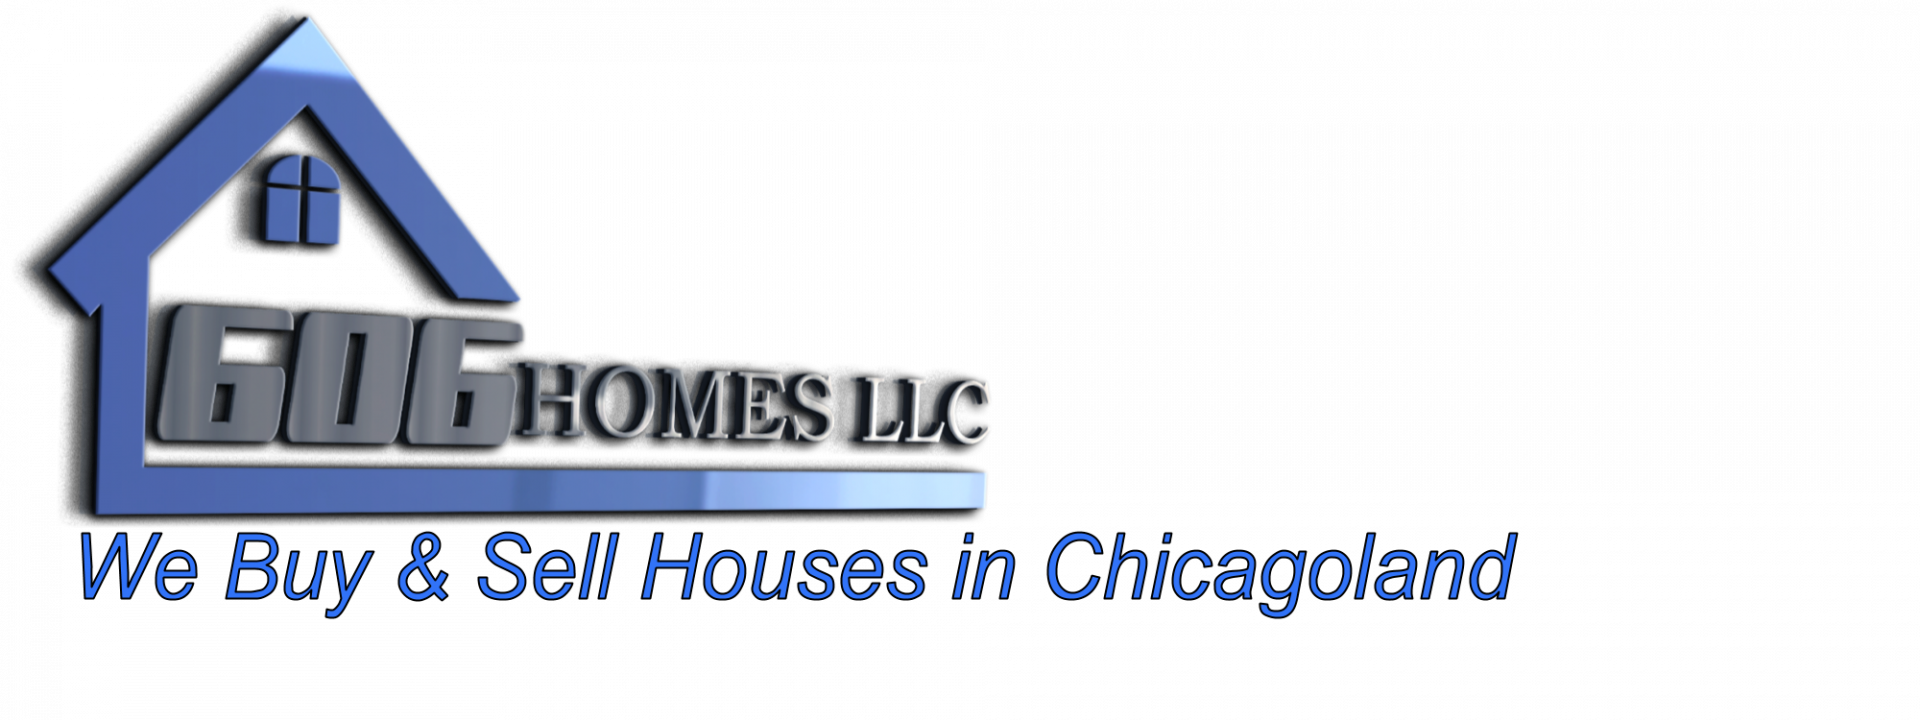 About 606 Homes LLC Chicago - 773-273-9155